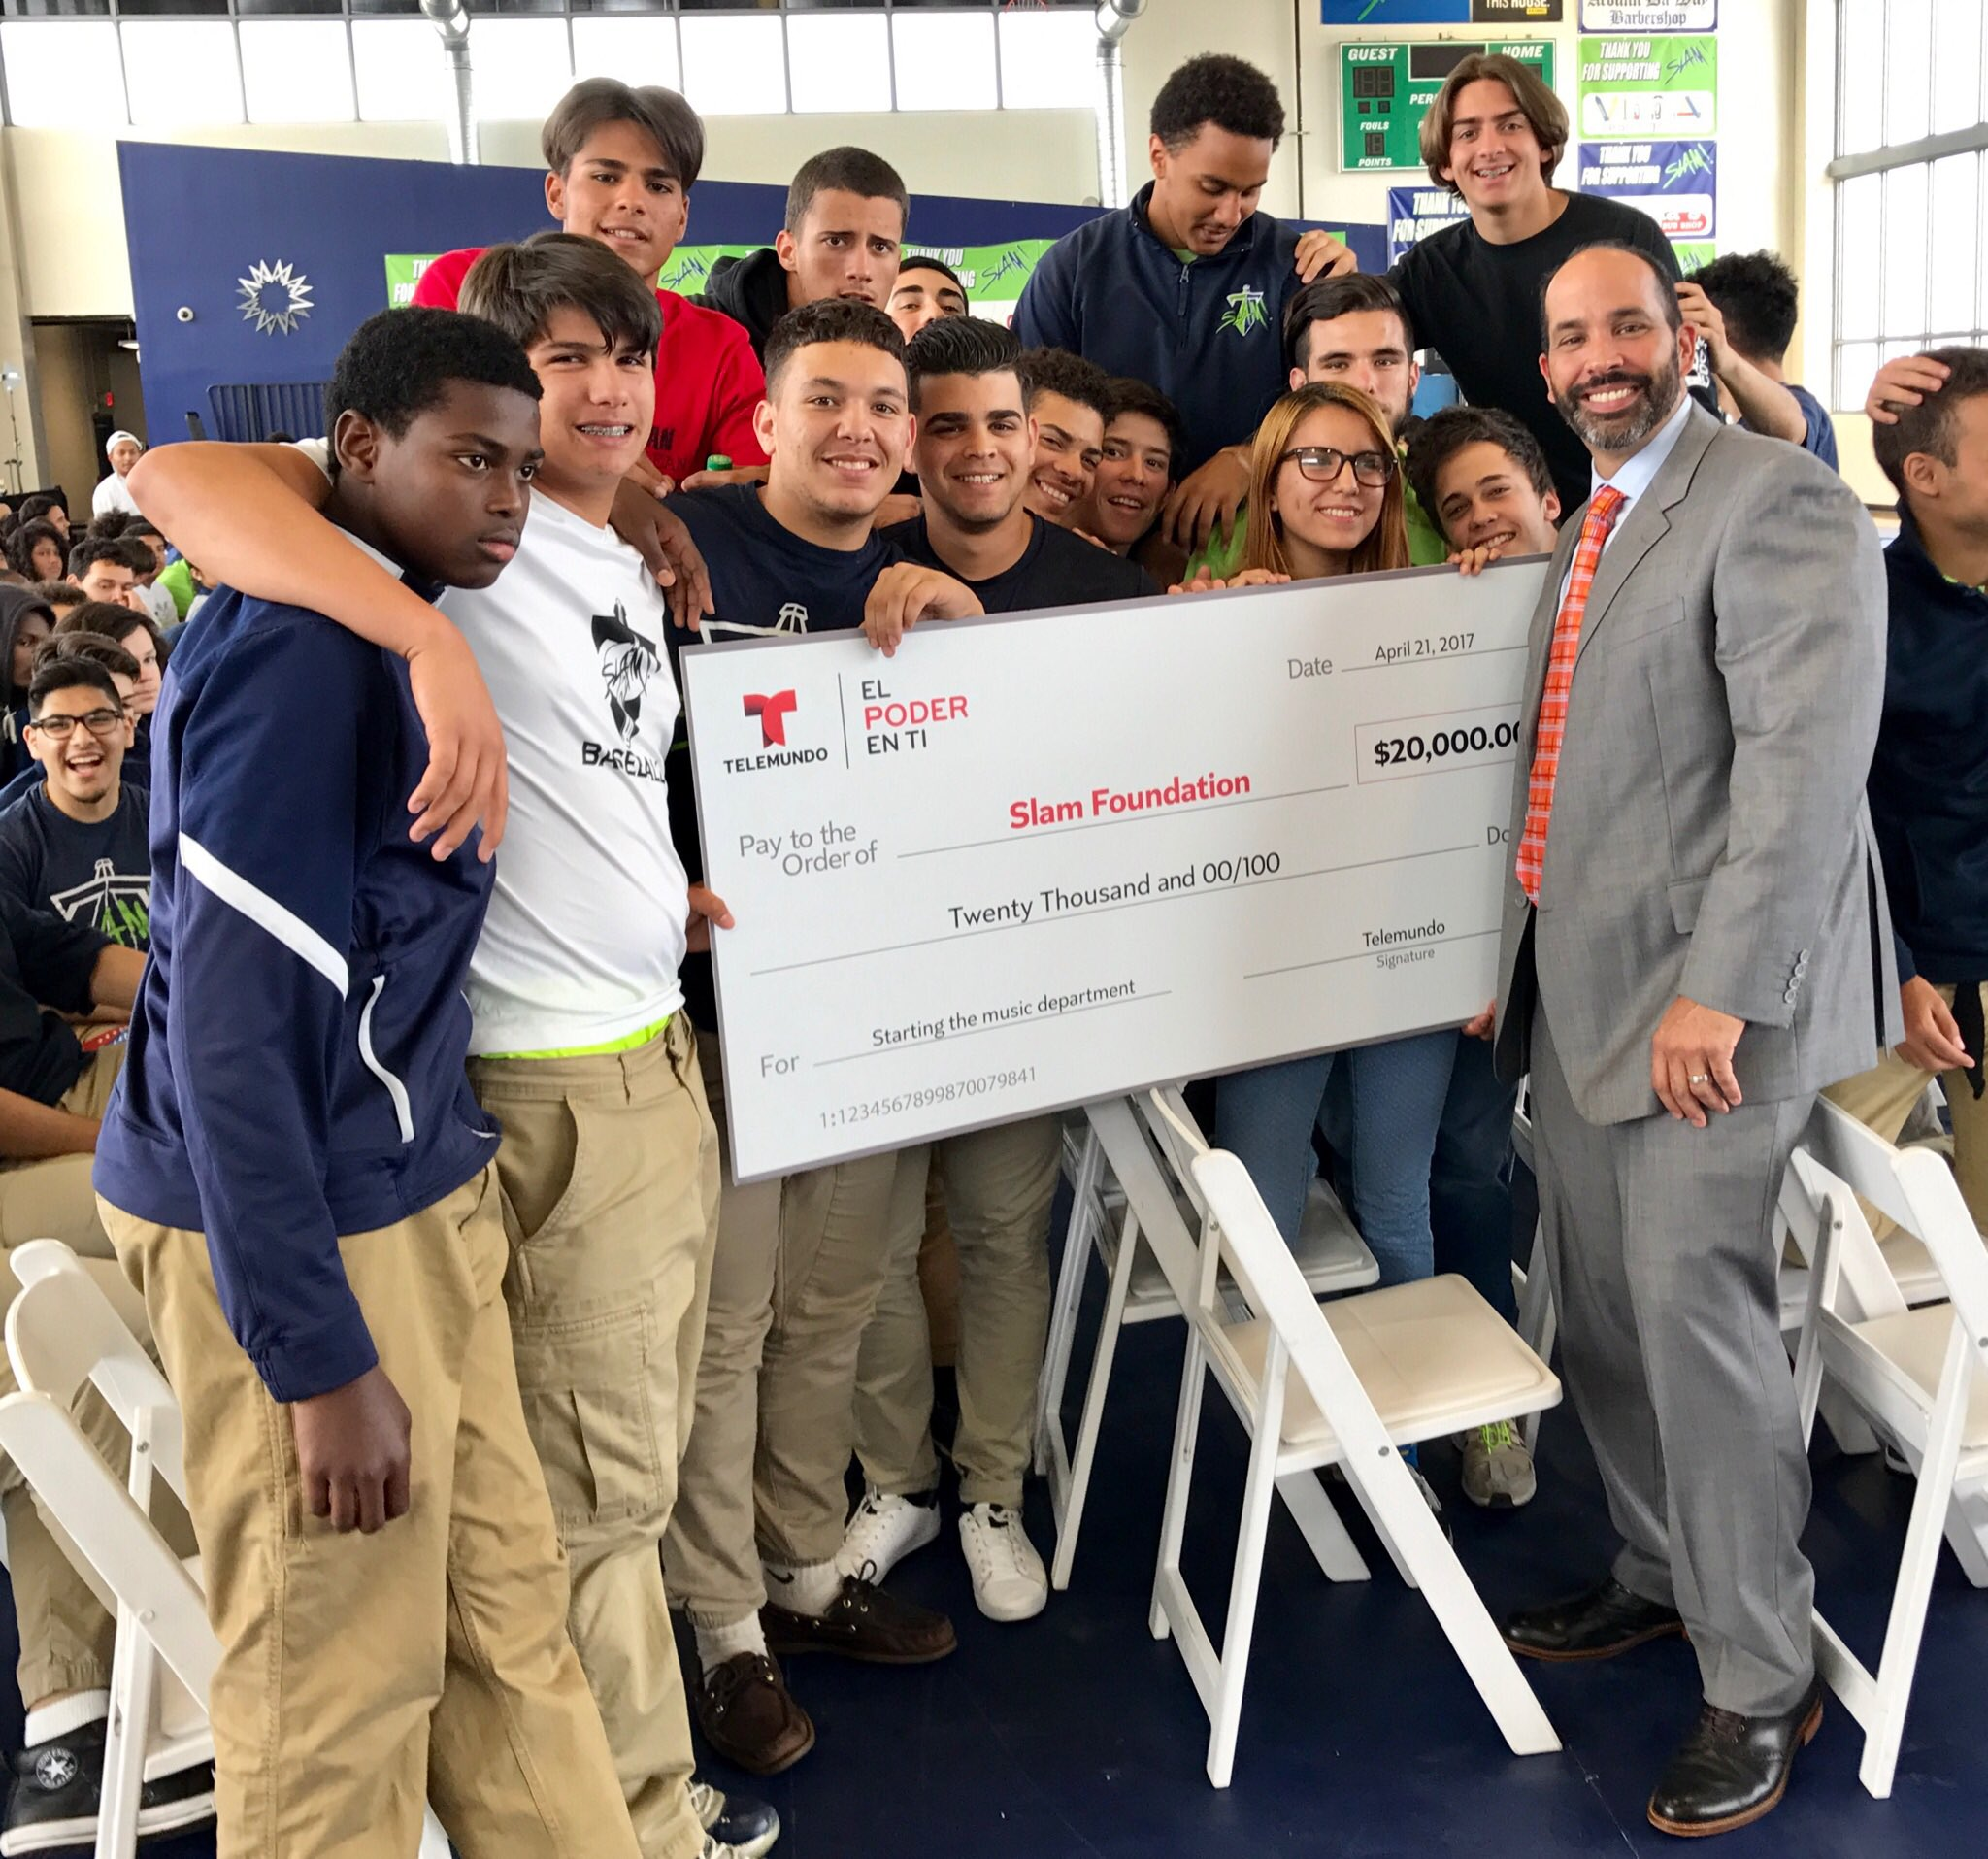 Thank you @telemundo for the support and donation to start up our @slammiaofficial music academy, Dale! #SLAMMiami https://t.co/cOmNvNNHlC